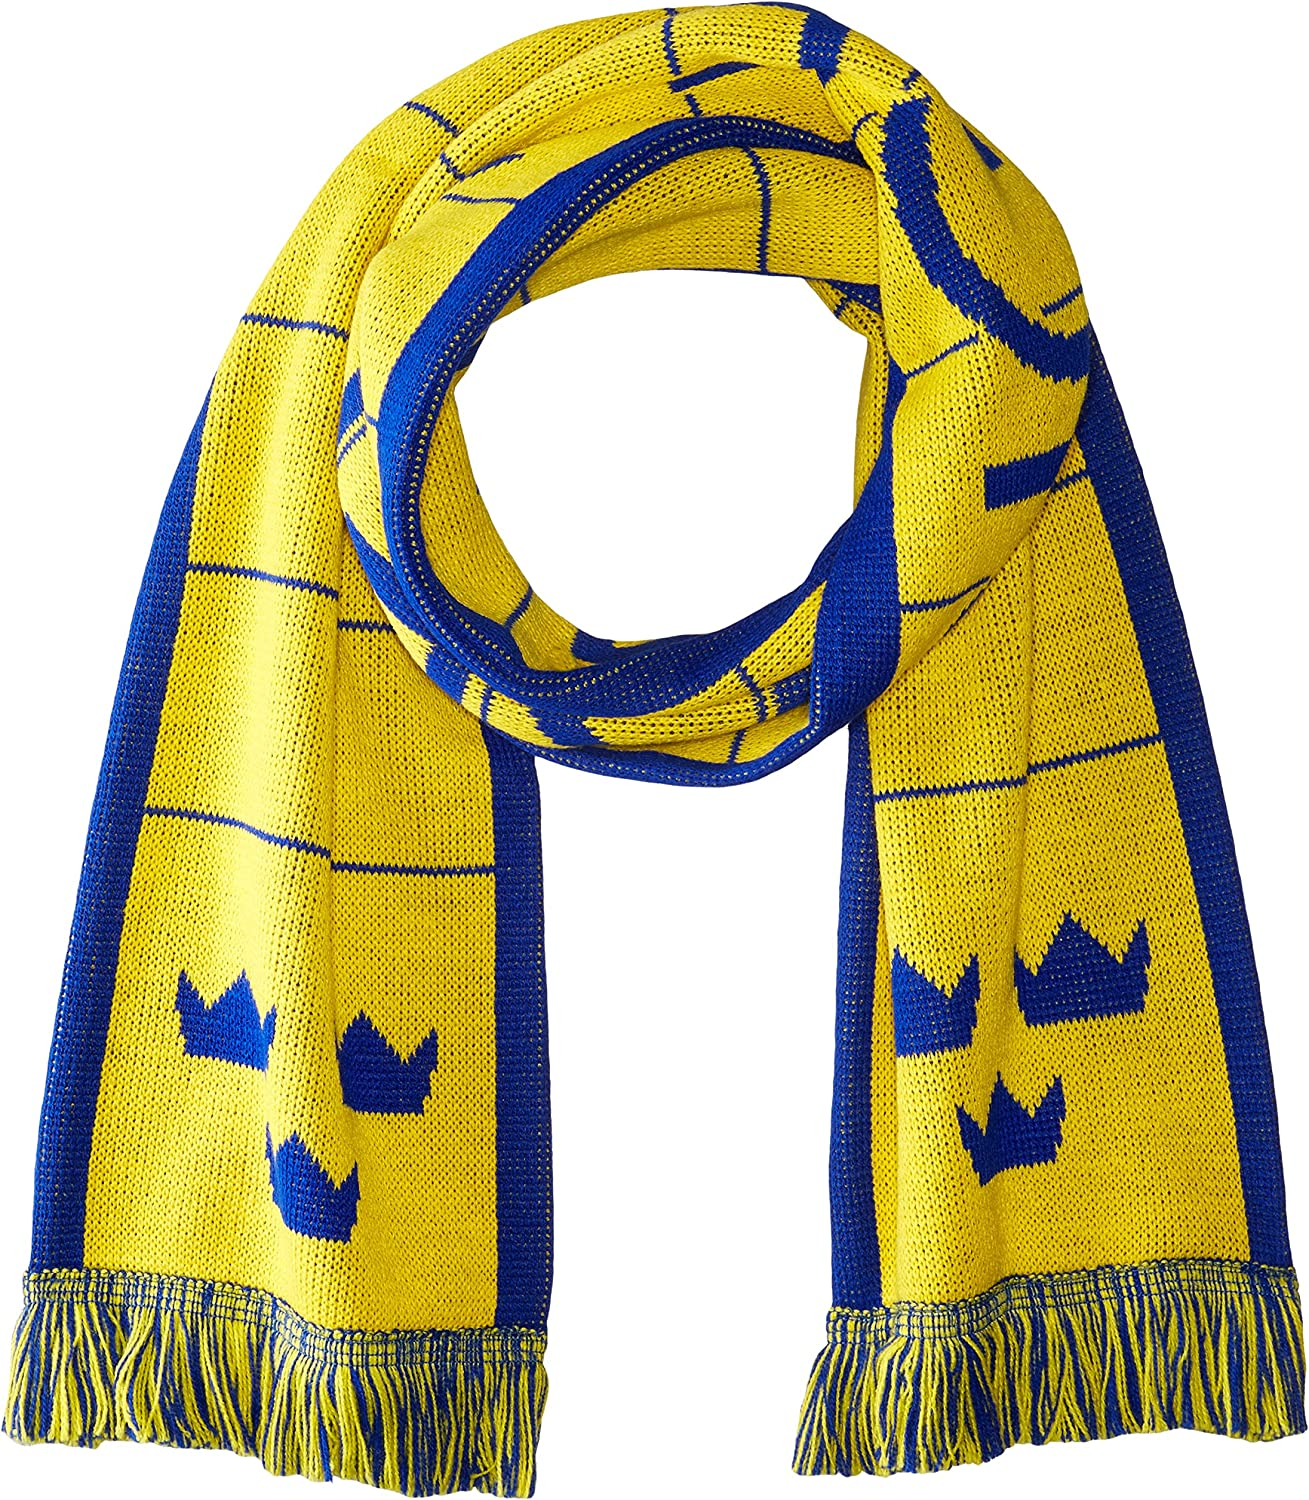 Ruffneck Scarves Scarf Same day shipping Max 52% OFF Sweden